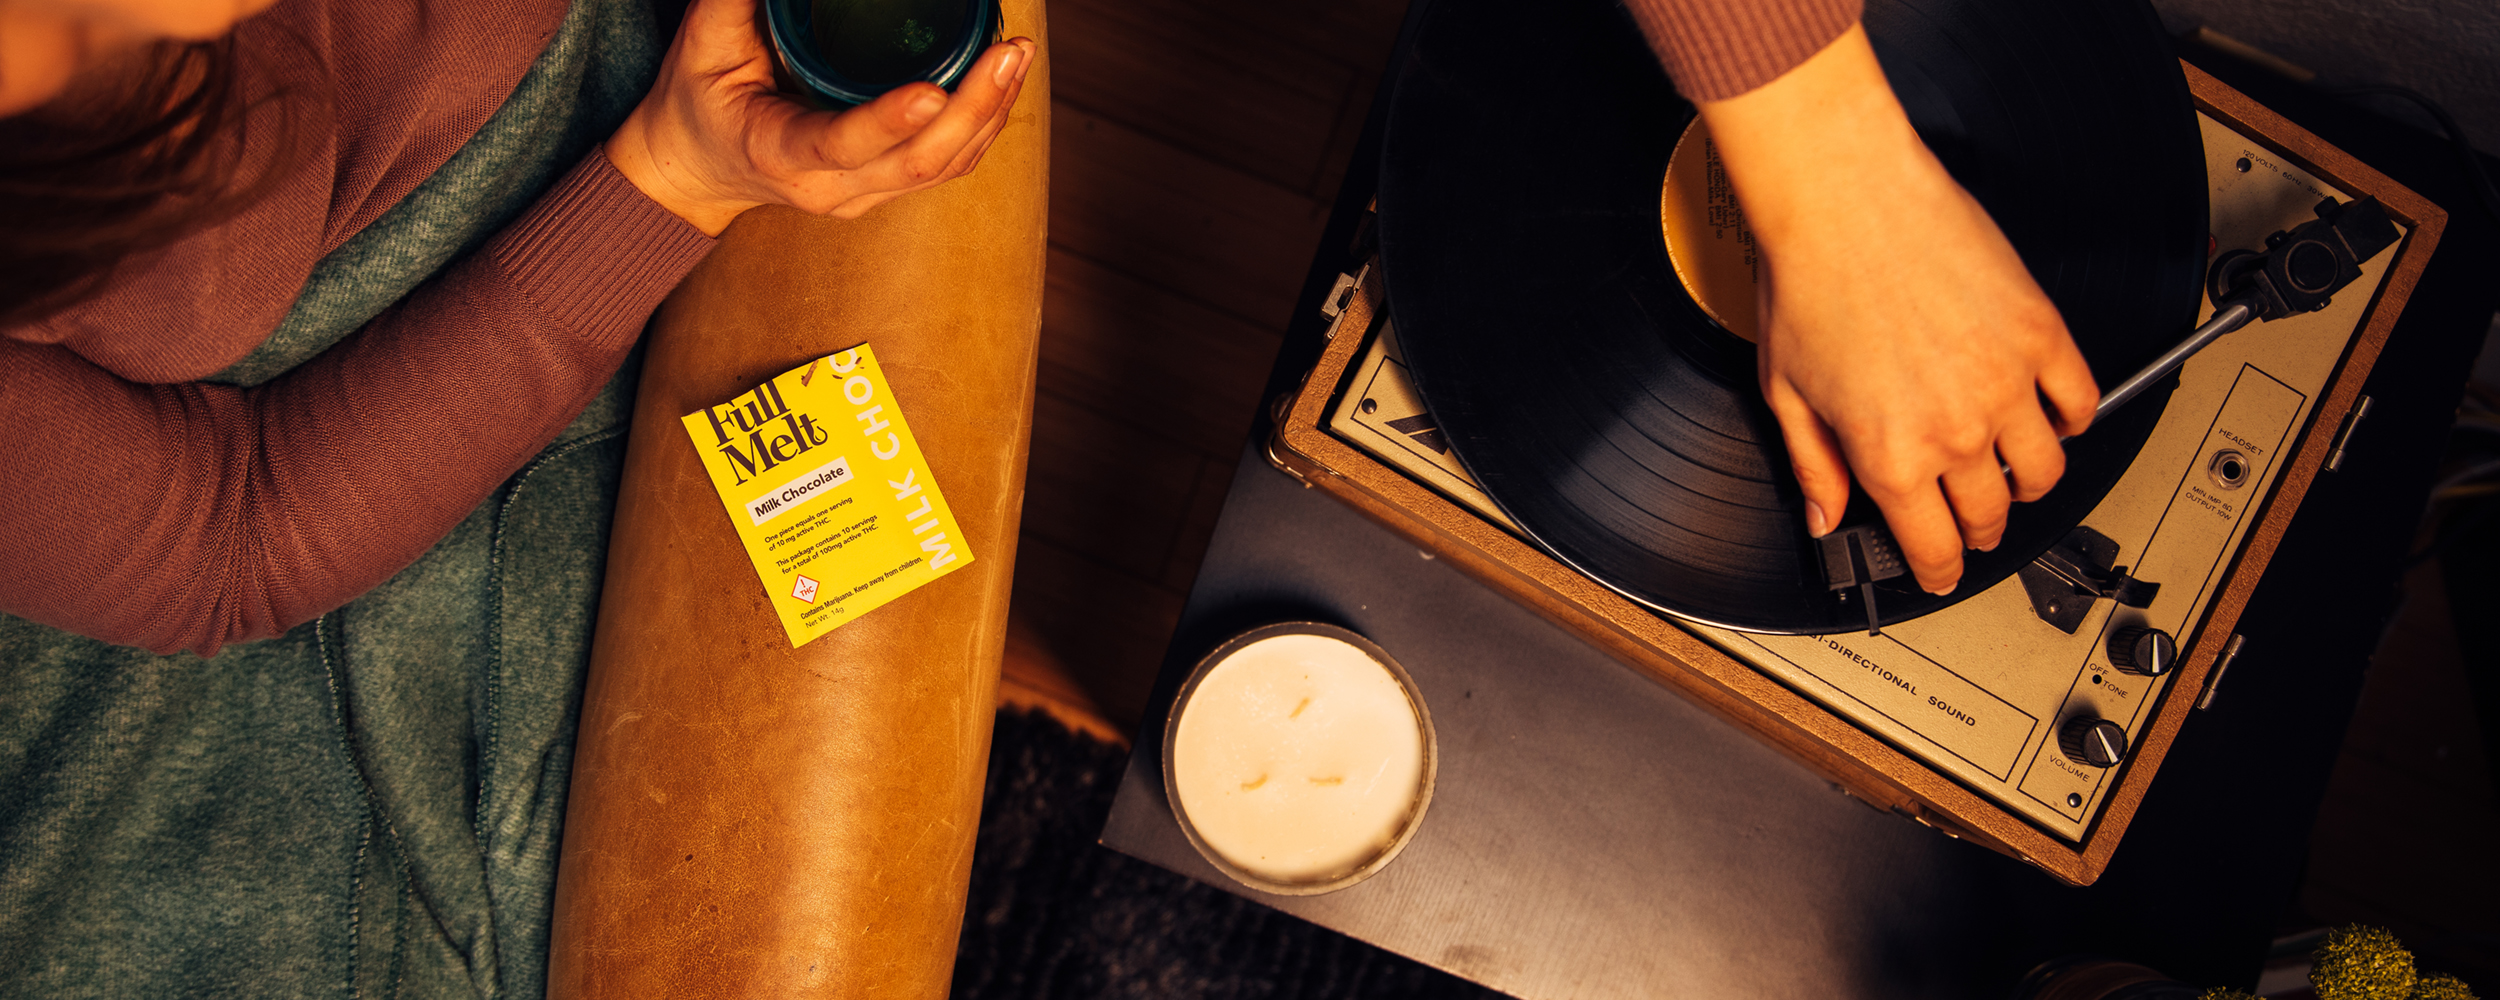 Woman playing a record, drinking coffee, and enjoying Full Melt infused chocolate on a leather couch